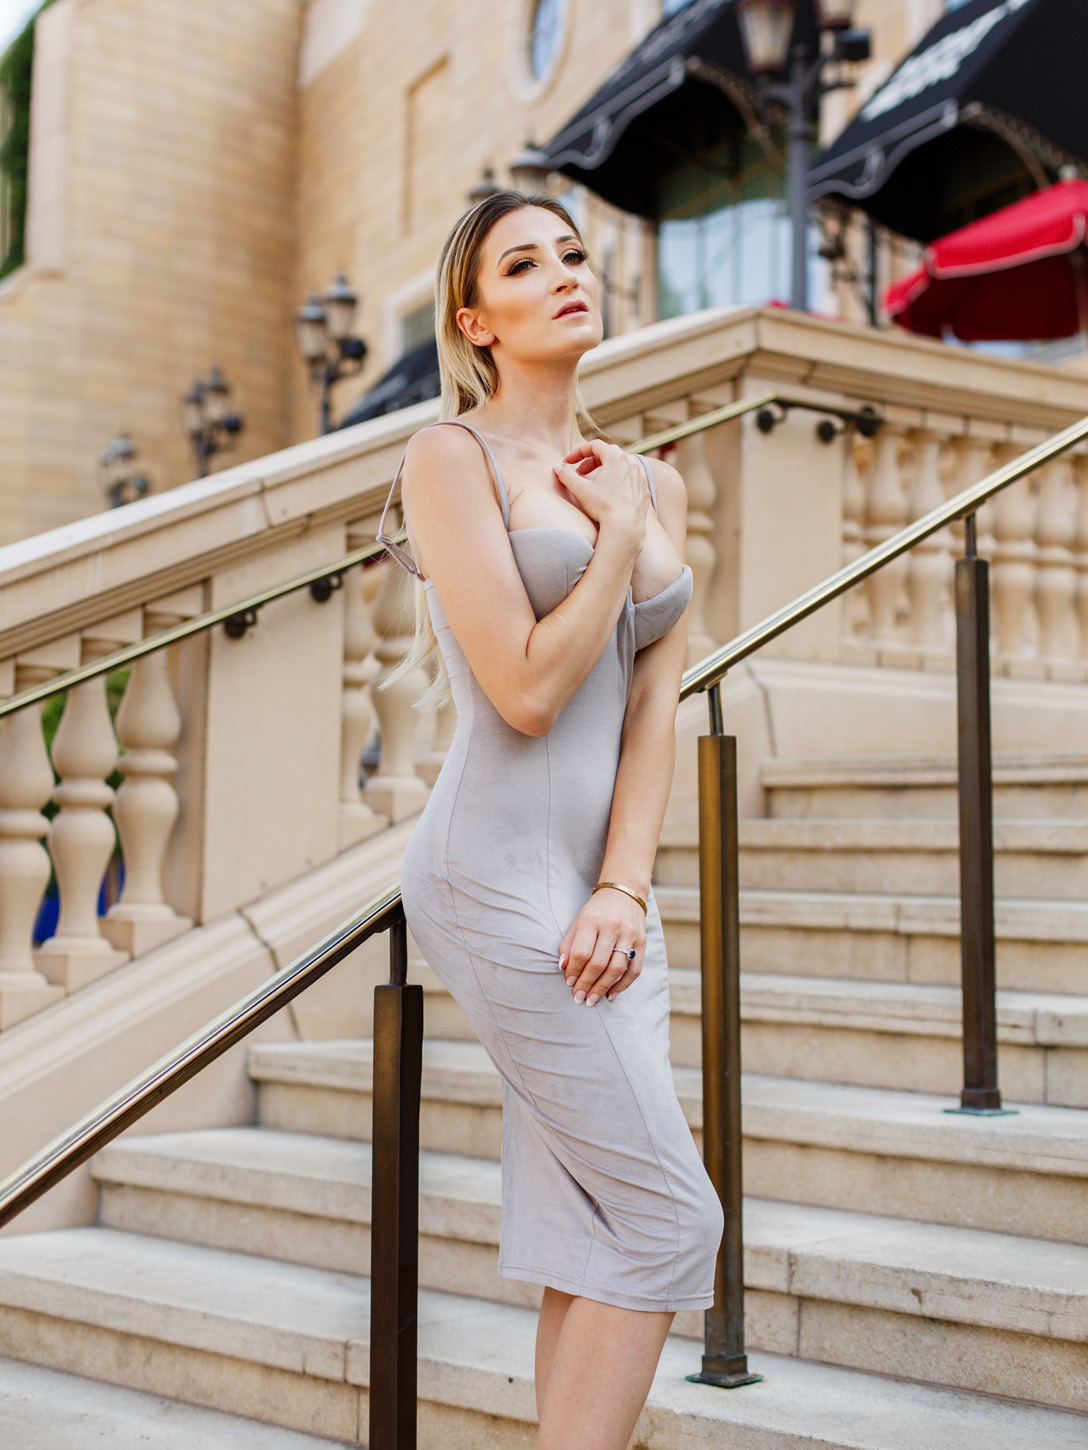 Palazzo With Runway 96 – Official Website of Holly Wolf